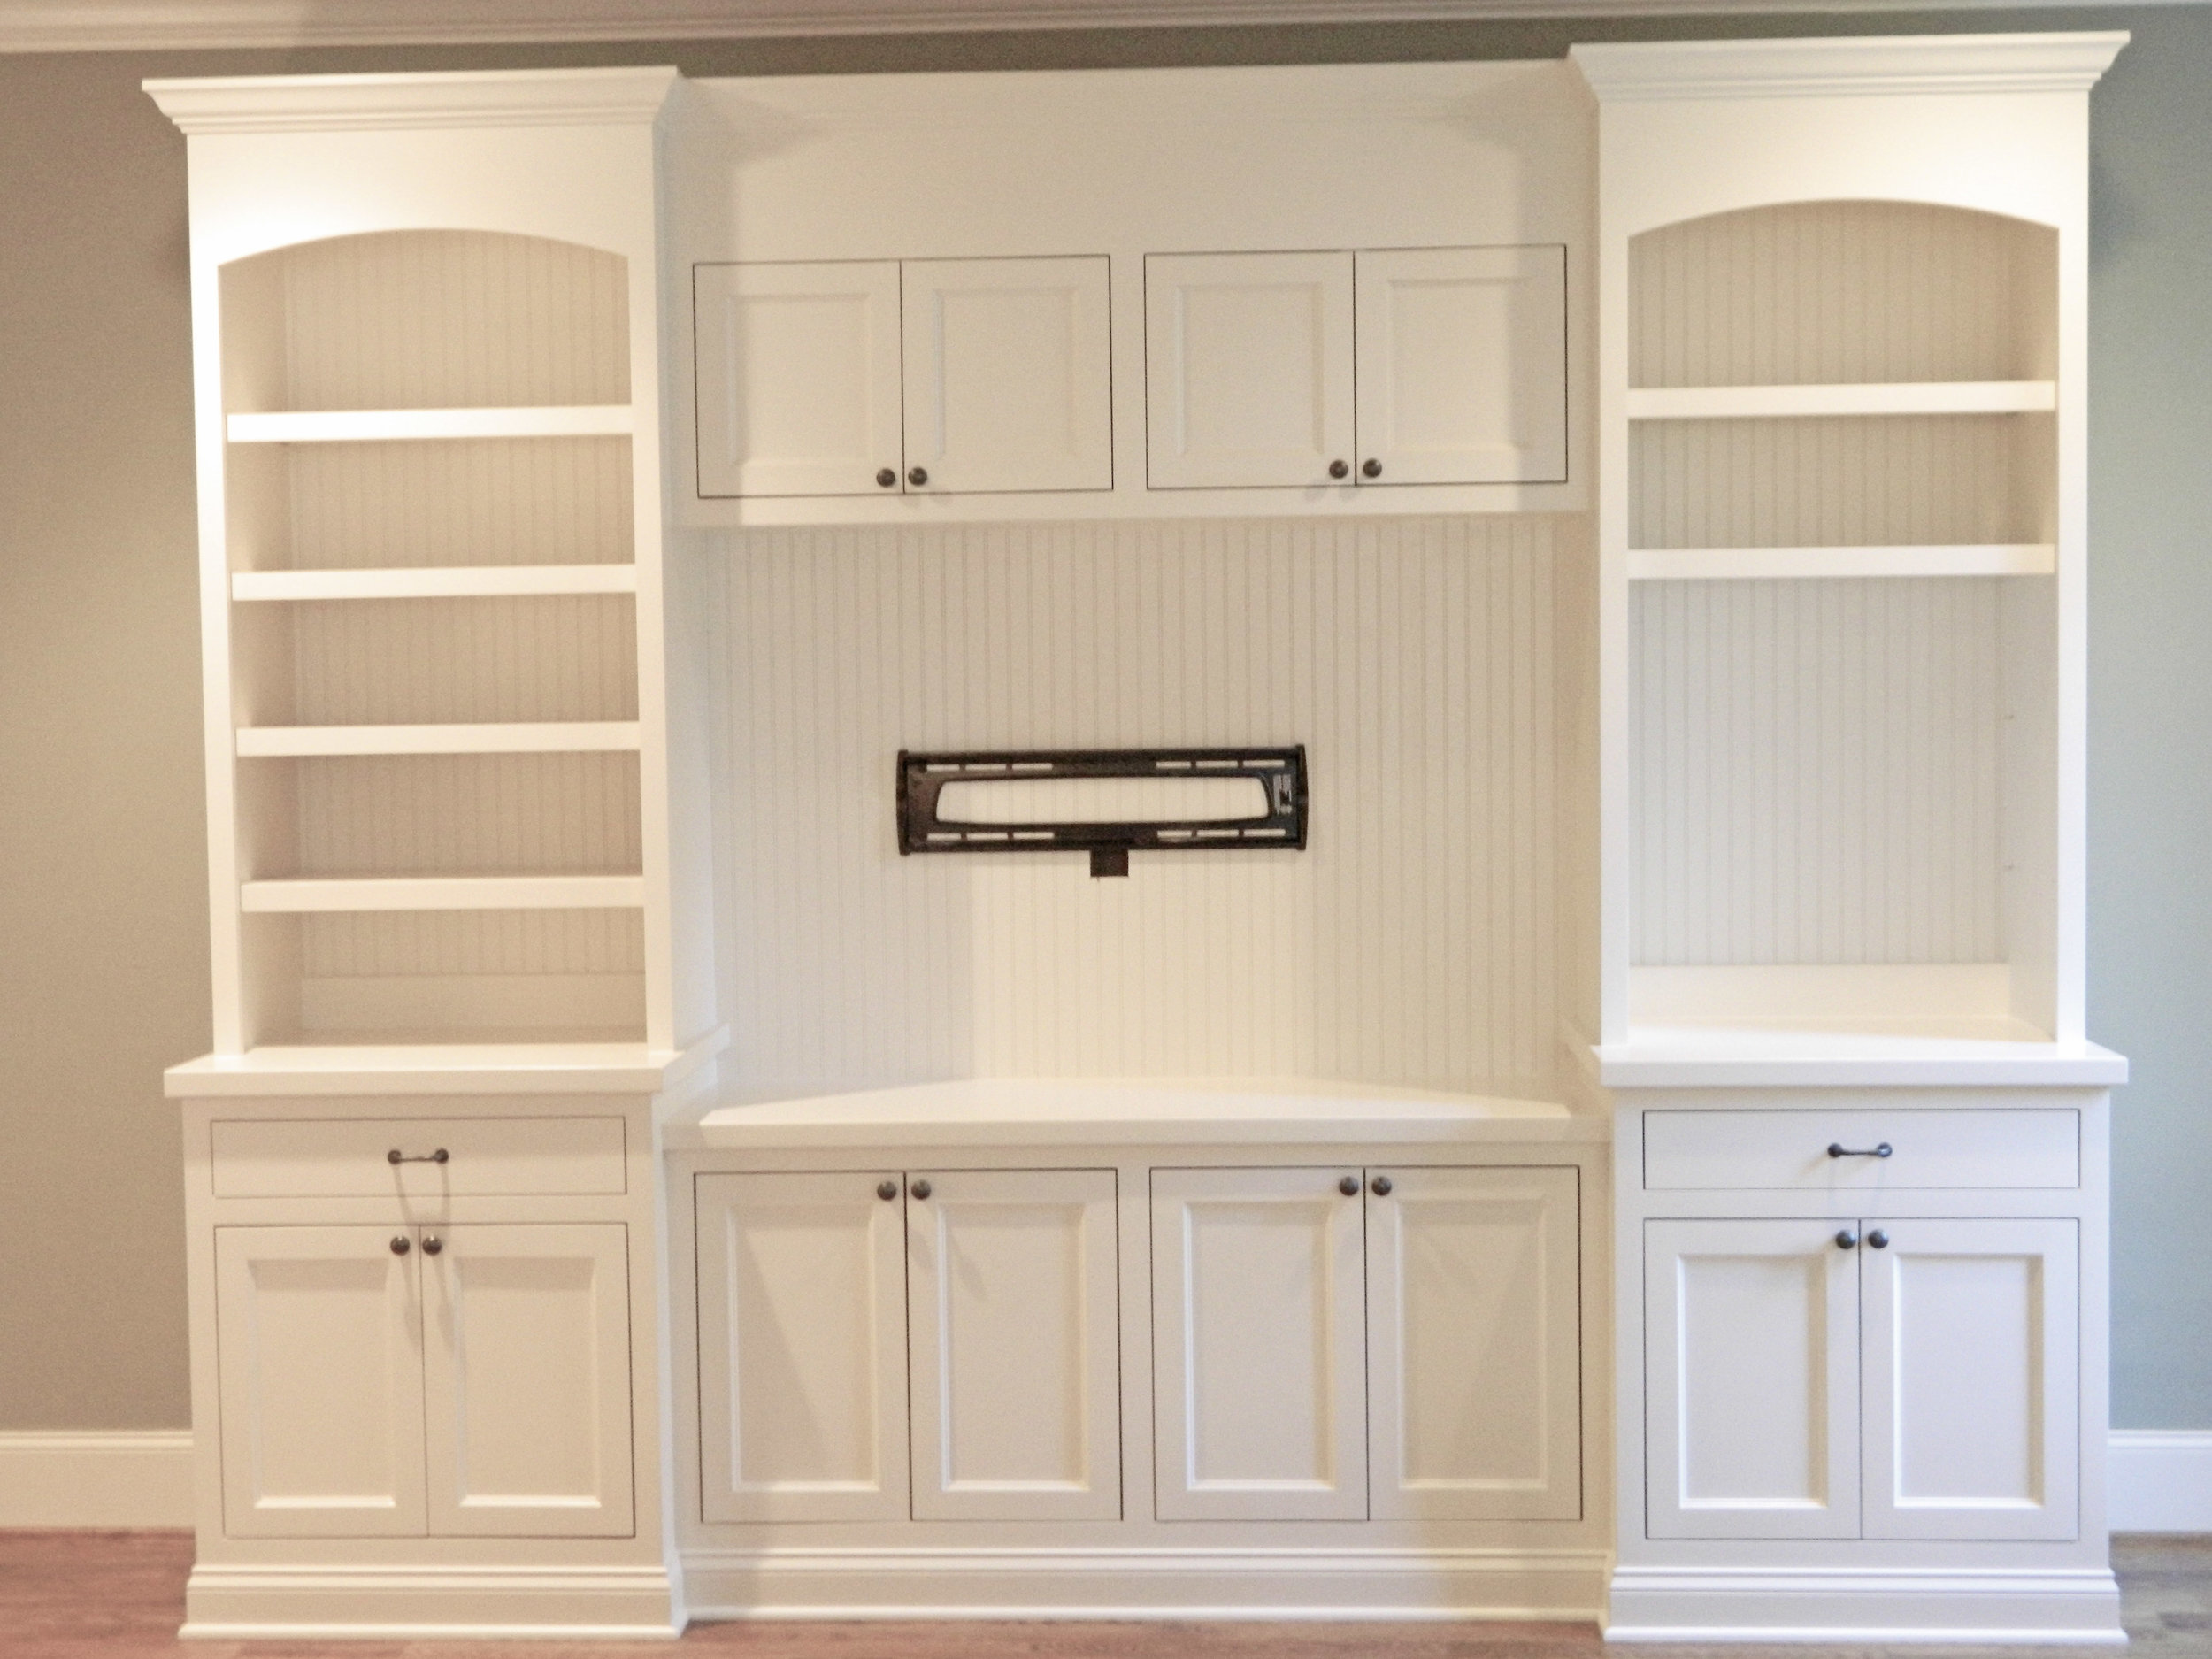 Built-In with Inset Shaker Doors, Inset Drawers, Arches, Header, Crown, and Beadboard Backer